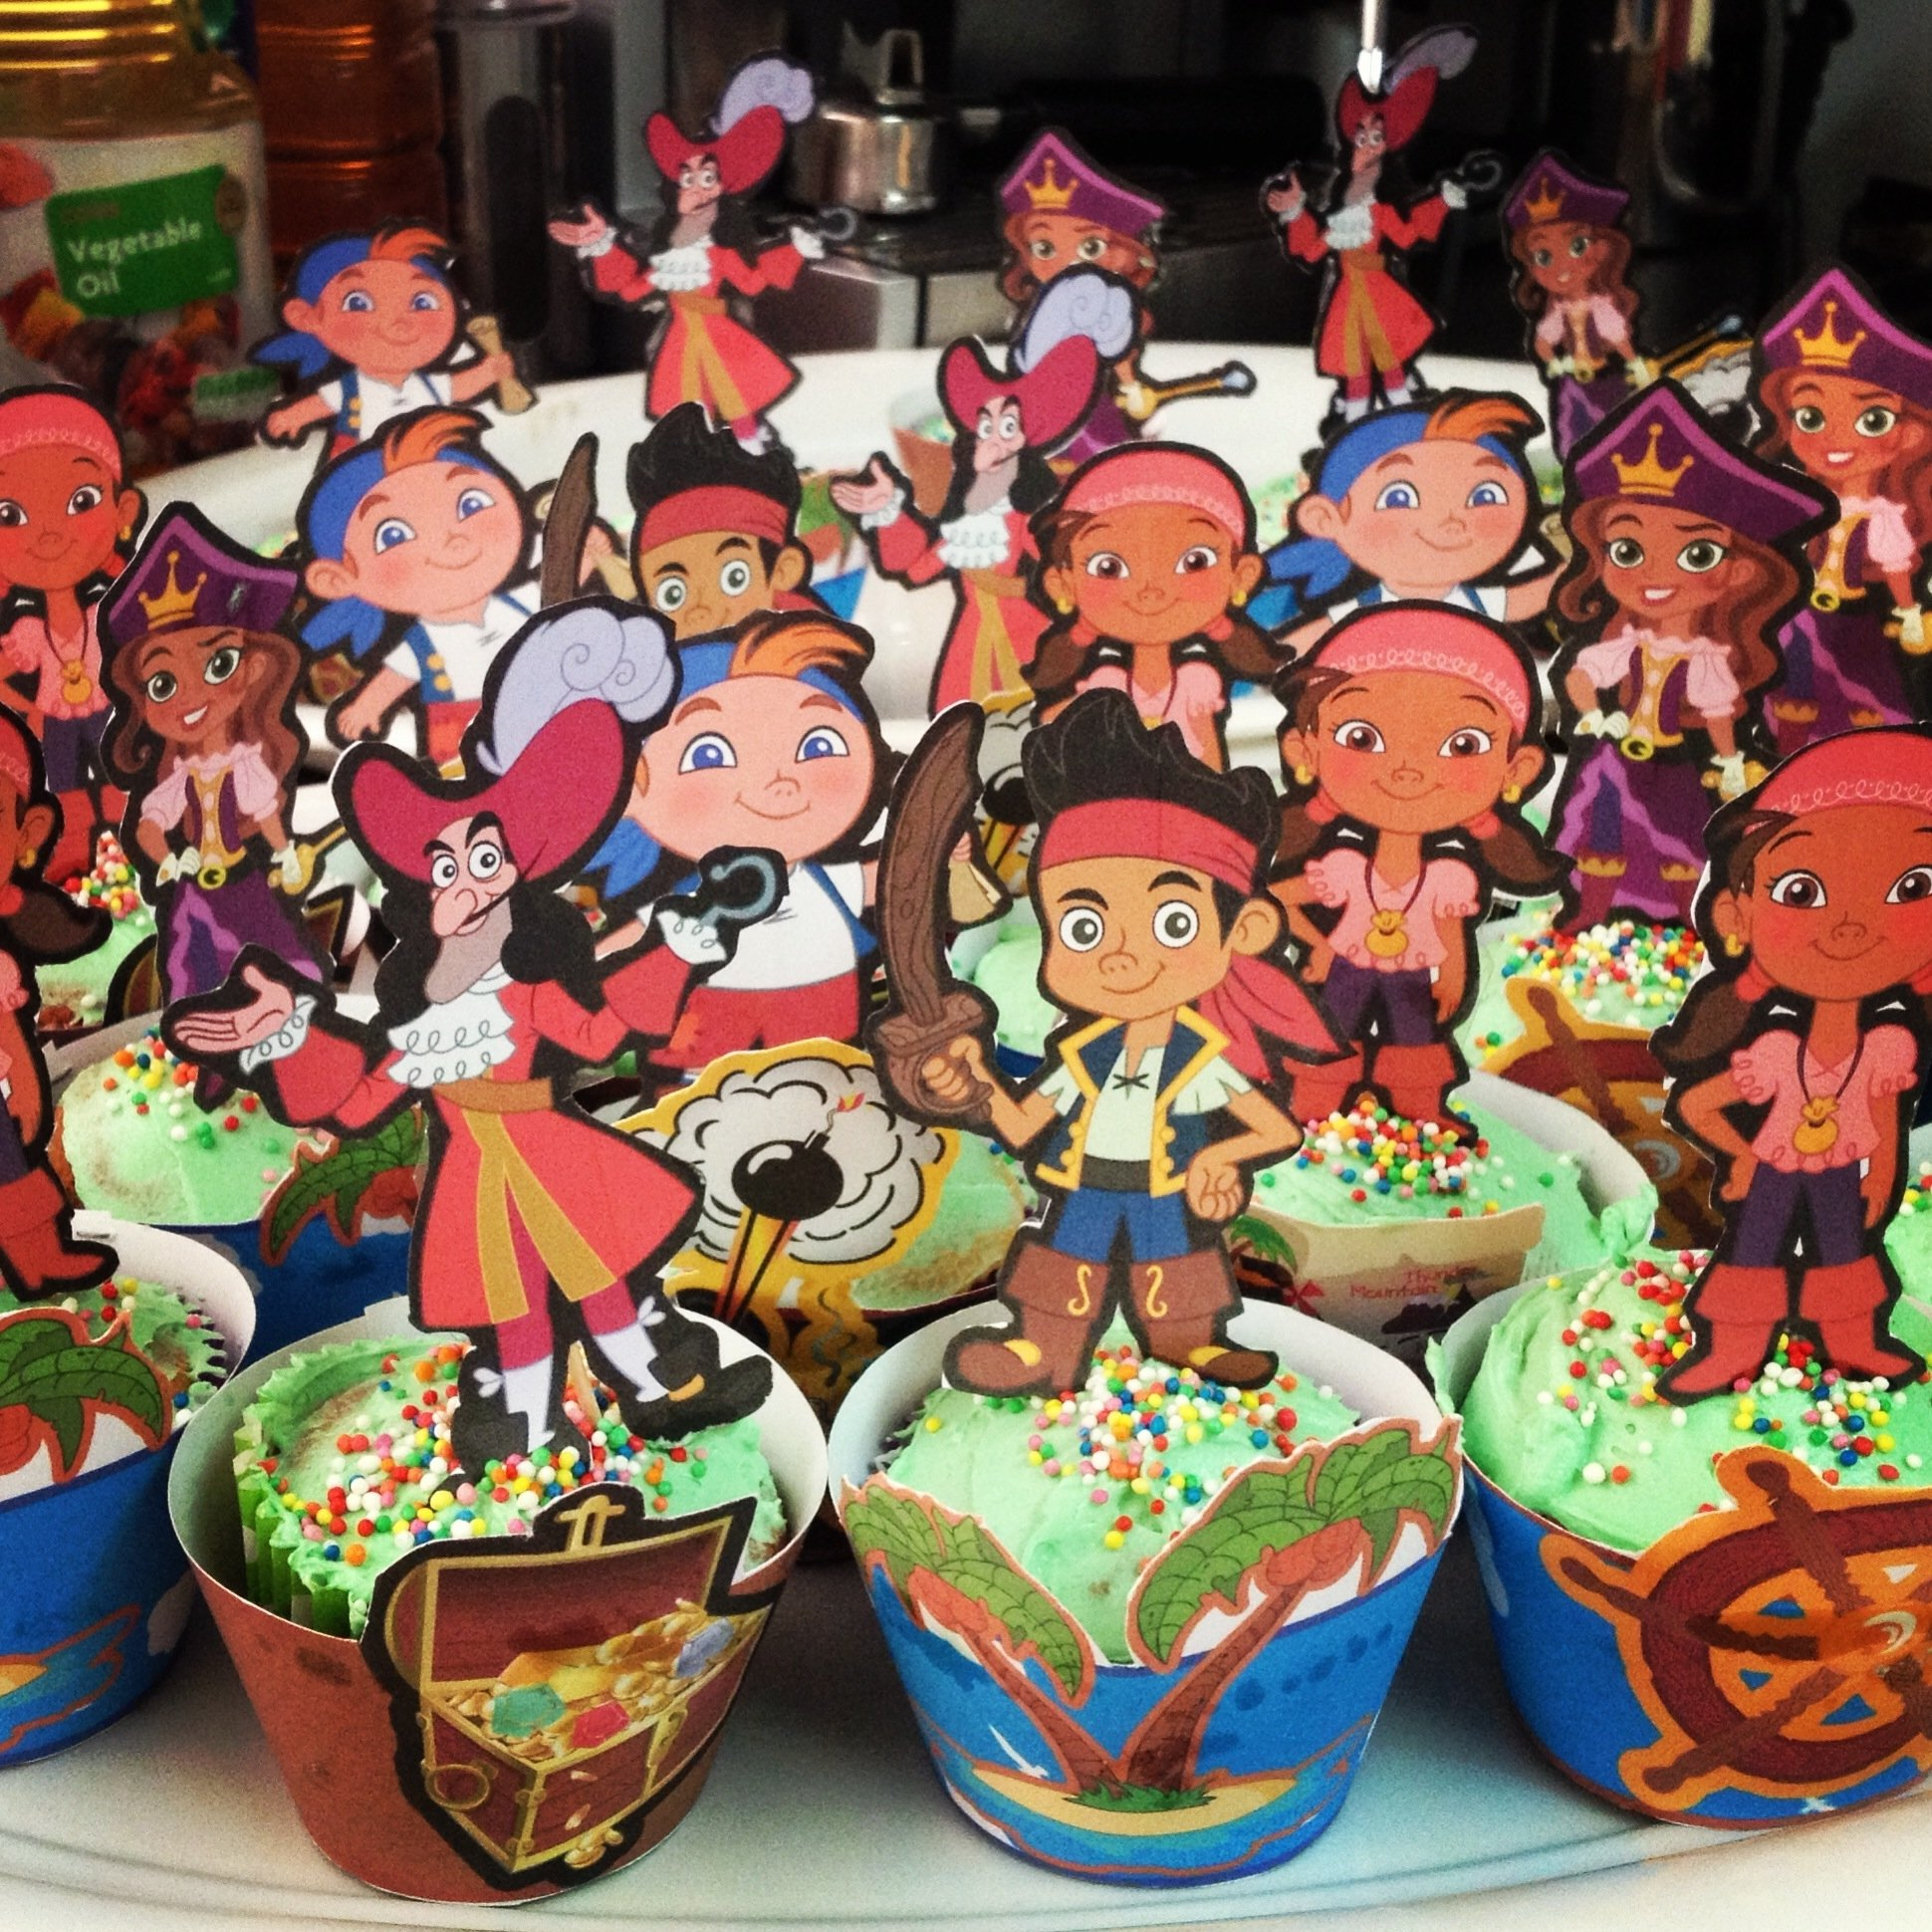 10 Awesome Jake And The Neverland Pirate Party Ideas pirate cupcakes for jake and the neverland pirates party birthday 2020